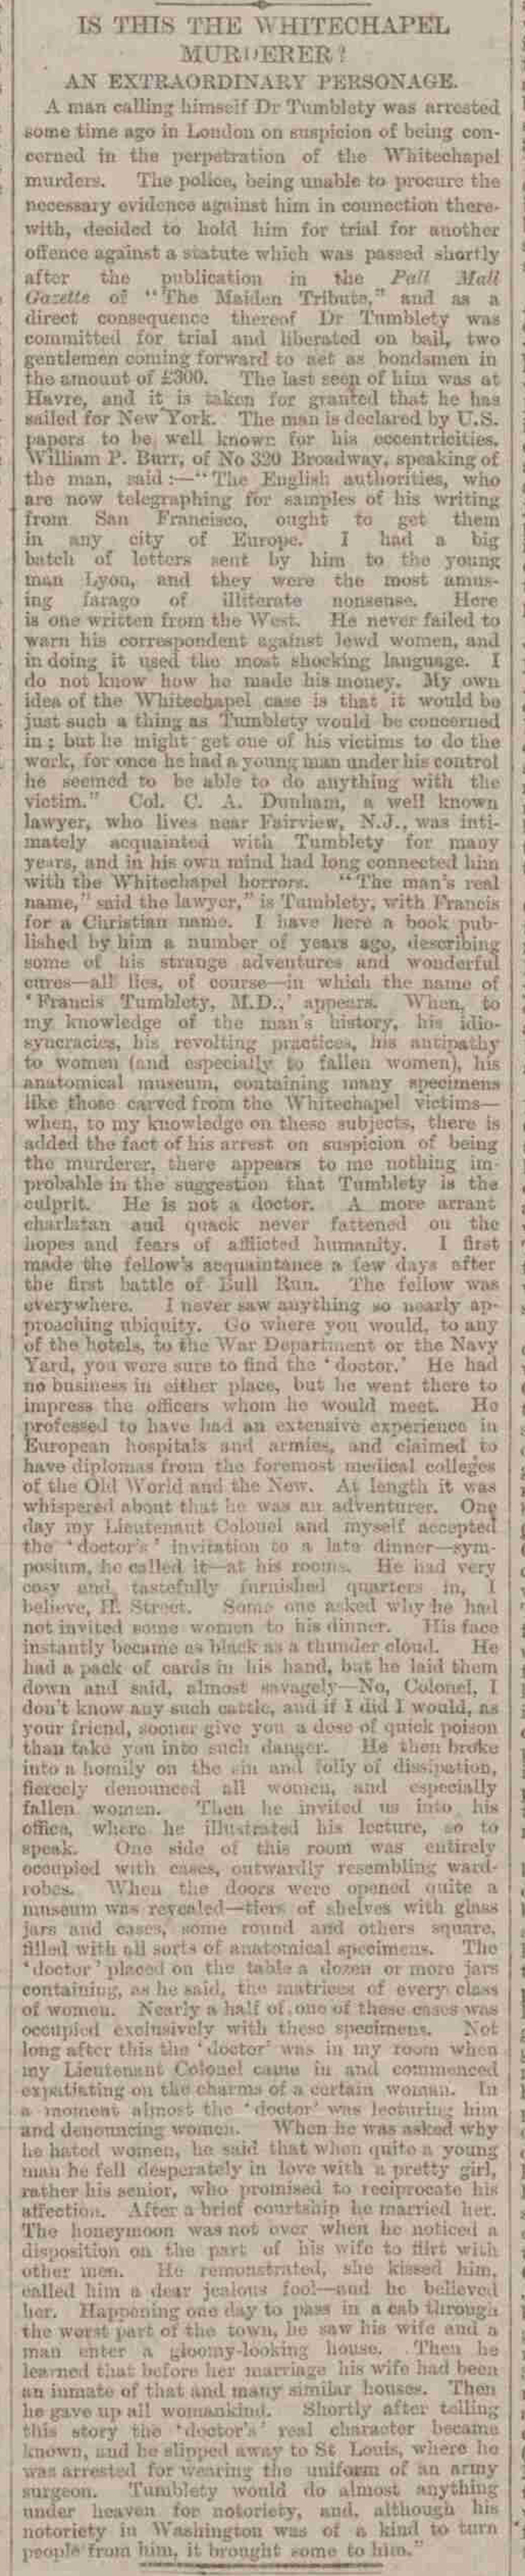 A press clipping about Jack the Ripper Suspect Francis Tumblety